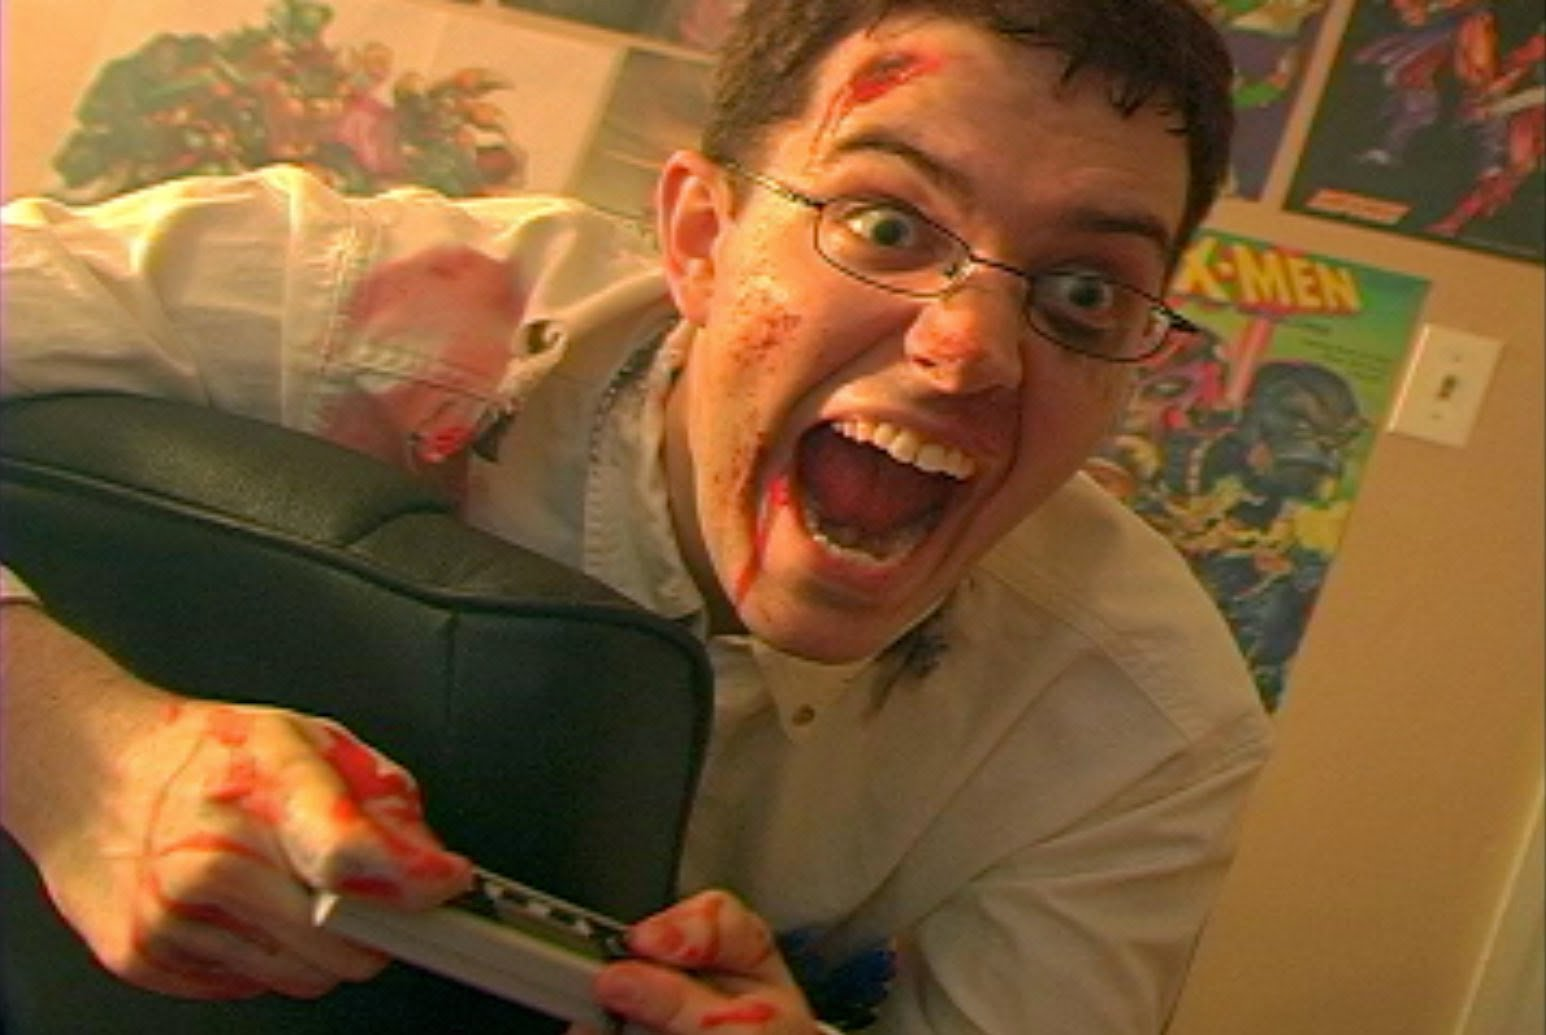 Angry Video Game Nerd Pics, Humor Collection